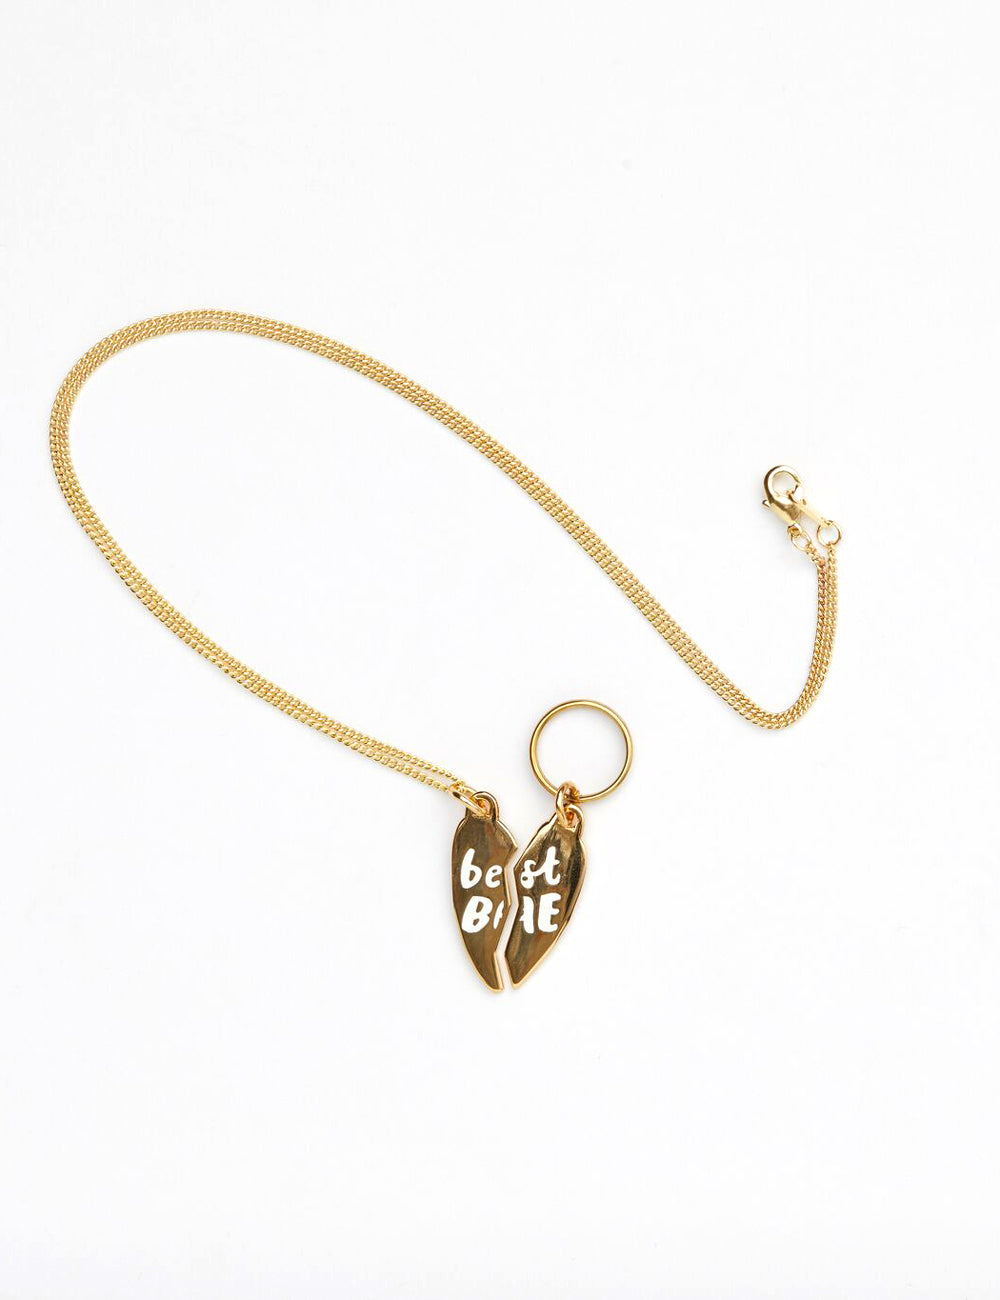 'Best Bae' Necklace & Collar Tag | Gold